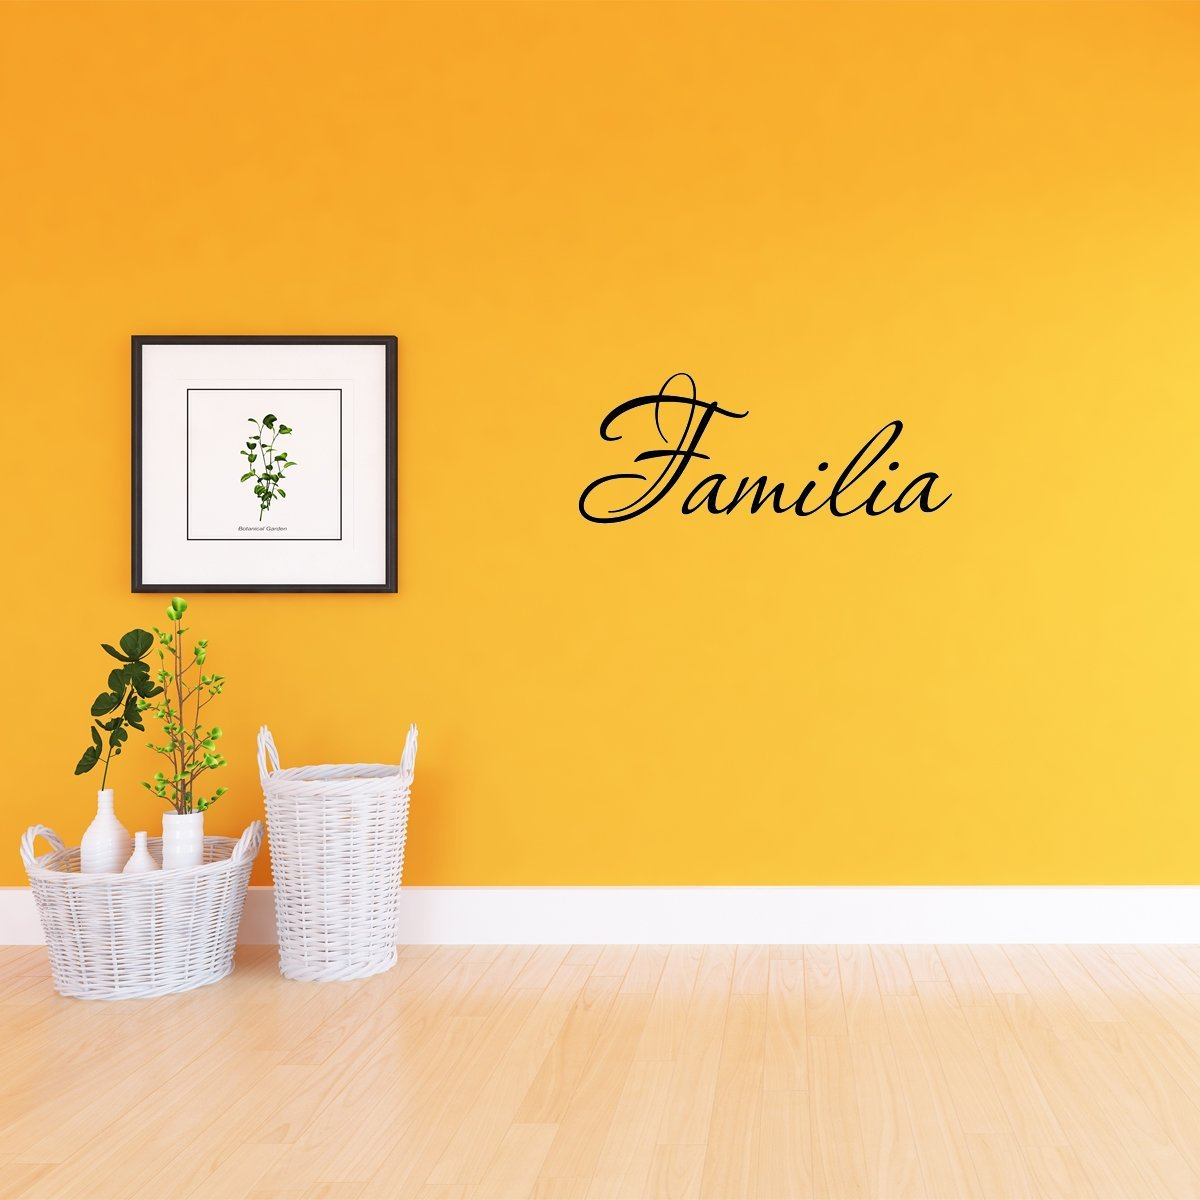 VWAQ Familia Spanish Wall Decal - VWAQ Vinyl Wall Art Quotes and Prints